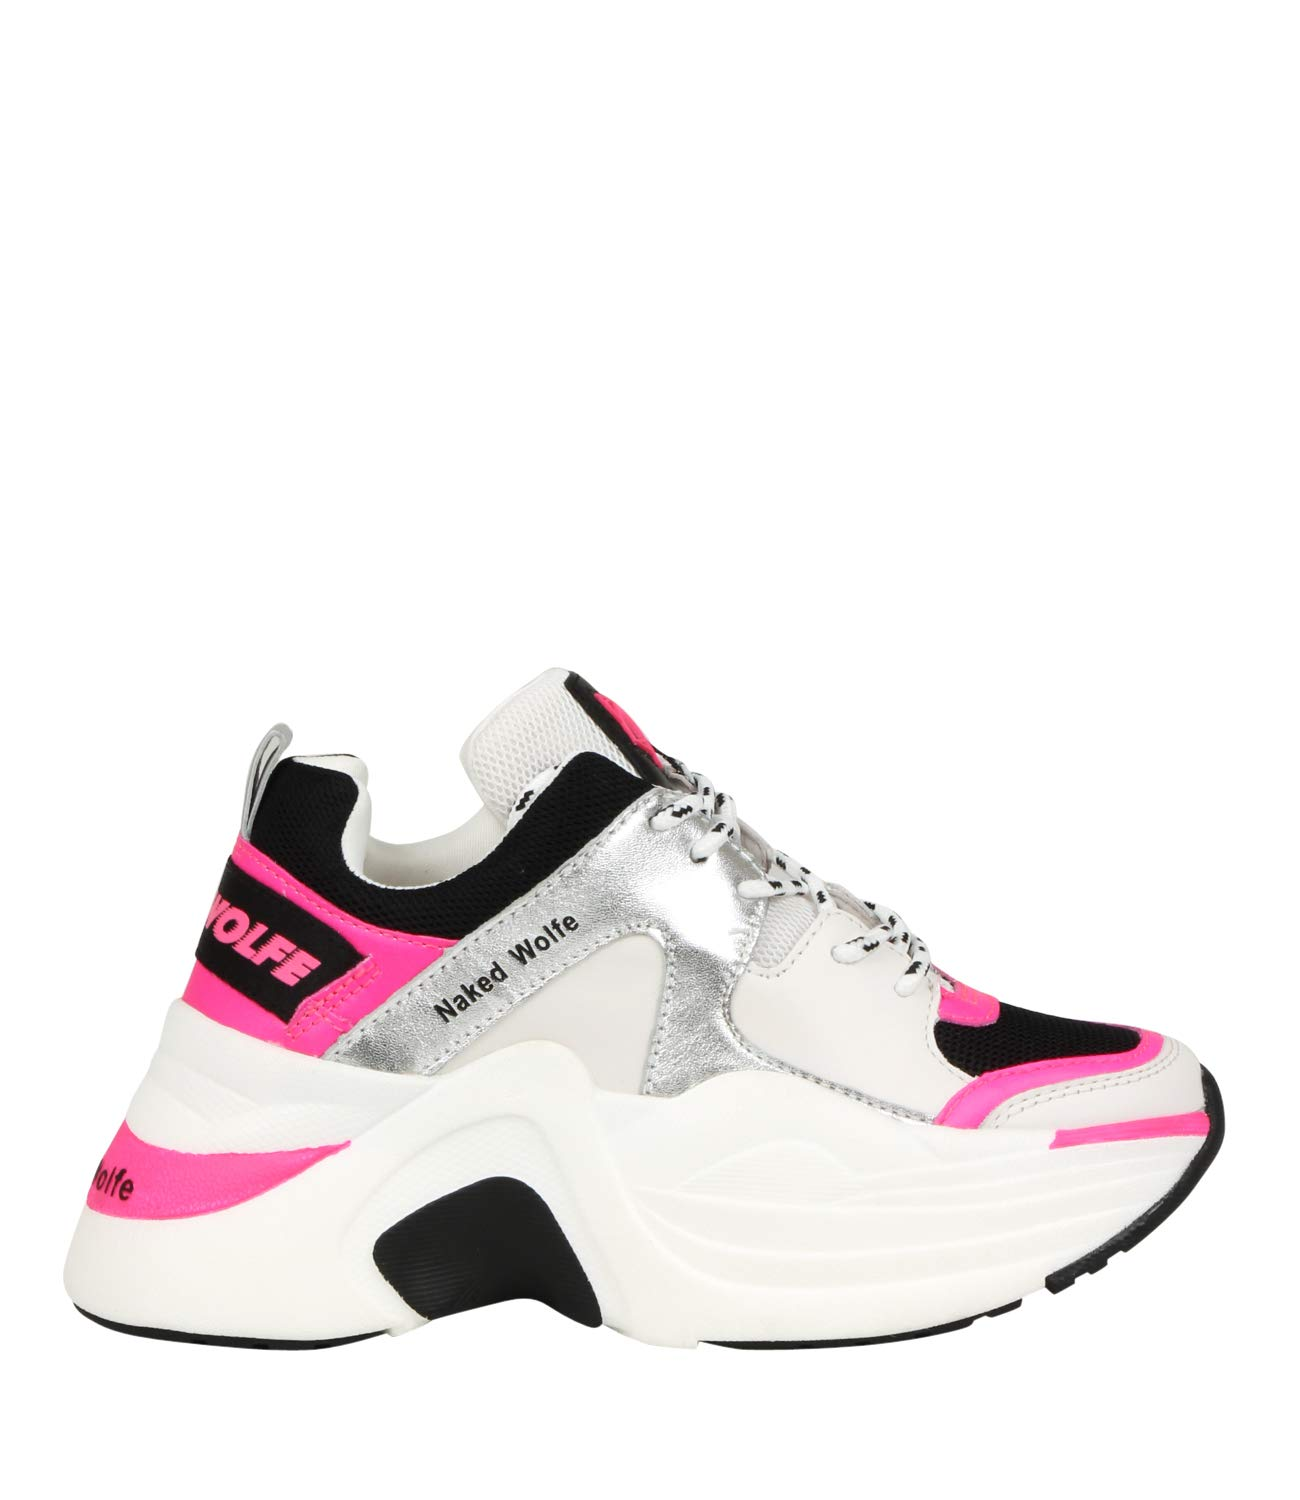 Nacked Wolfe Sneakers Track neon Pink